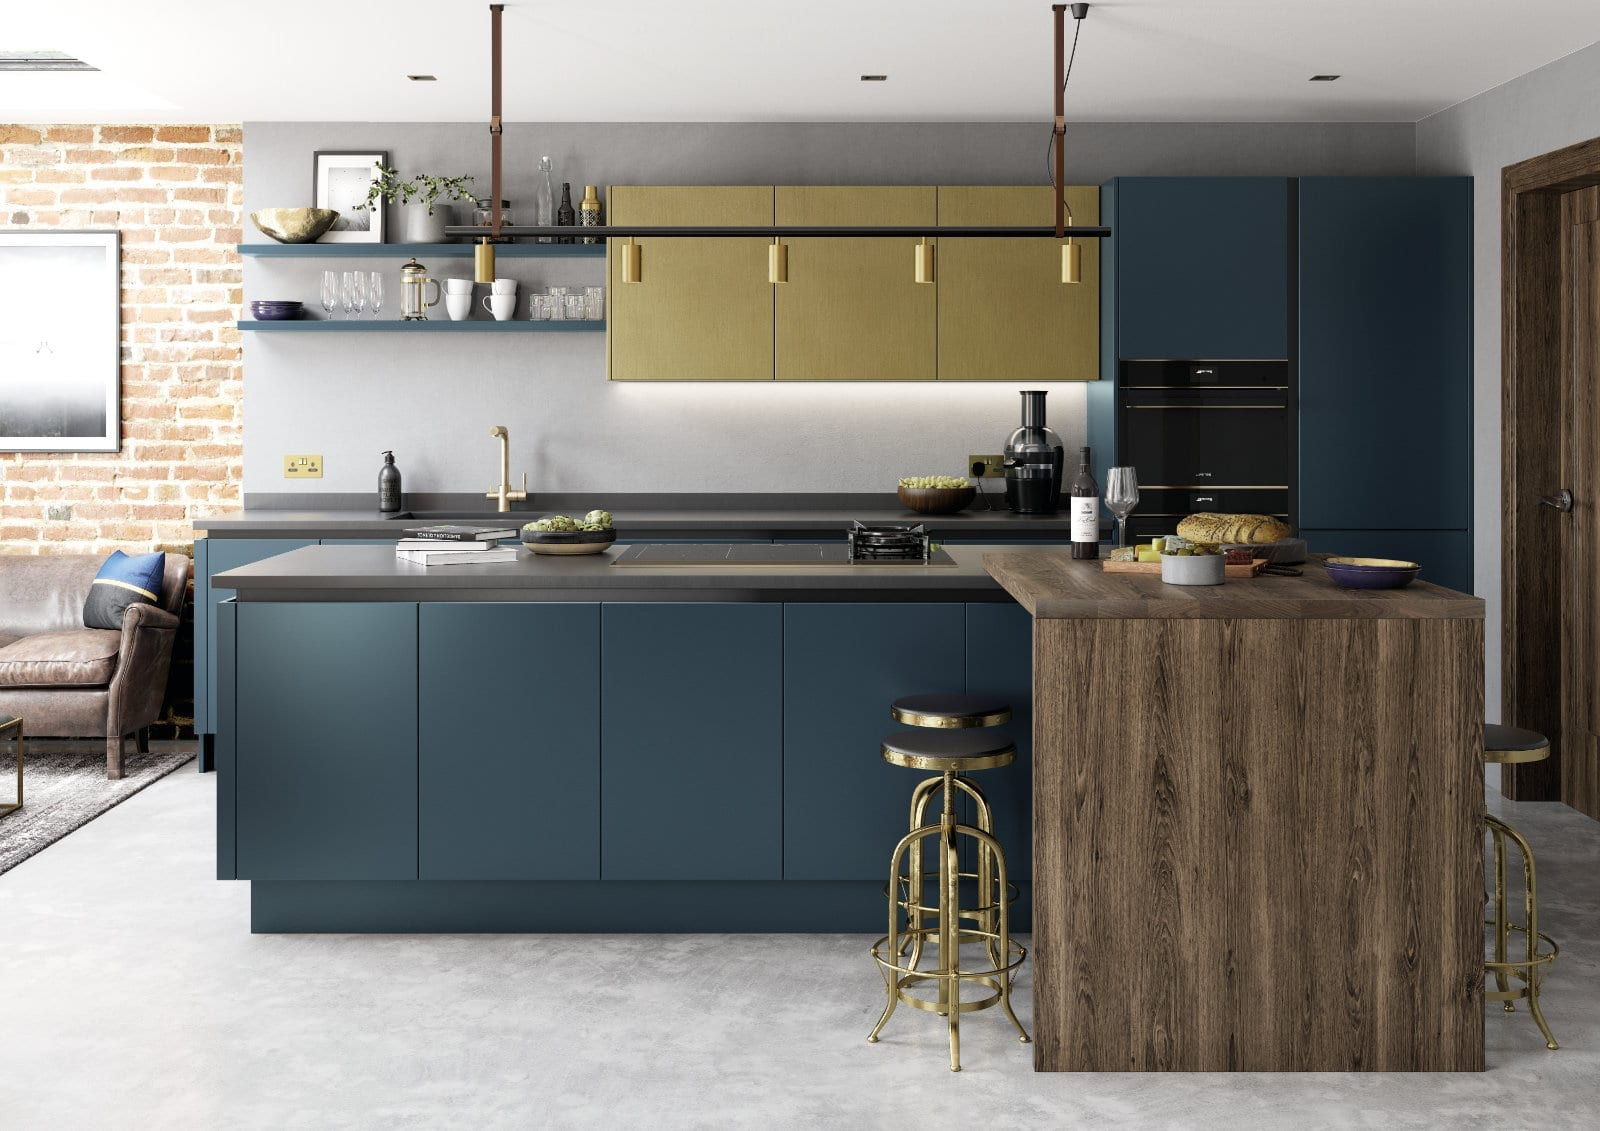 Alku Modern Handleless Kitchen With Island | Unique Bedrooms Direct | Dunstable